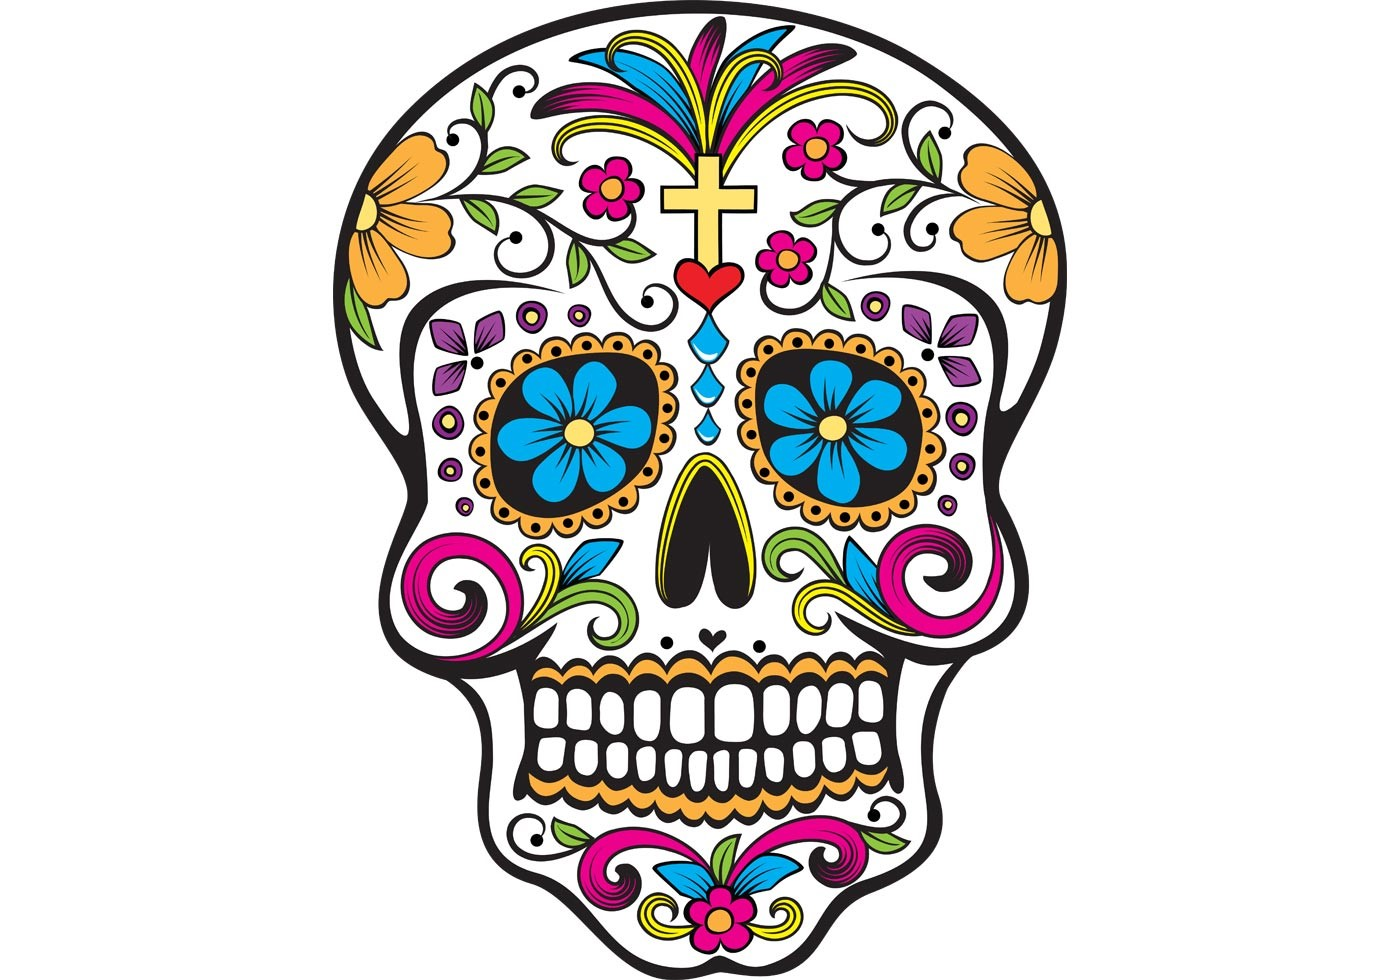 An example of some skulls used to decorate during the holiday.